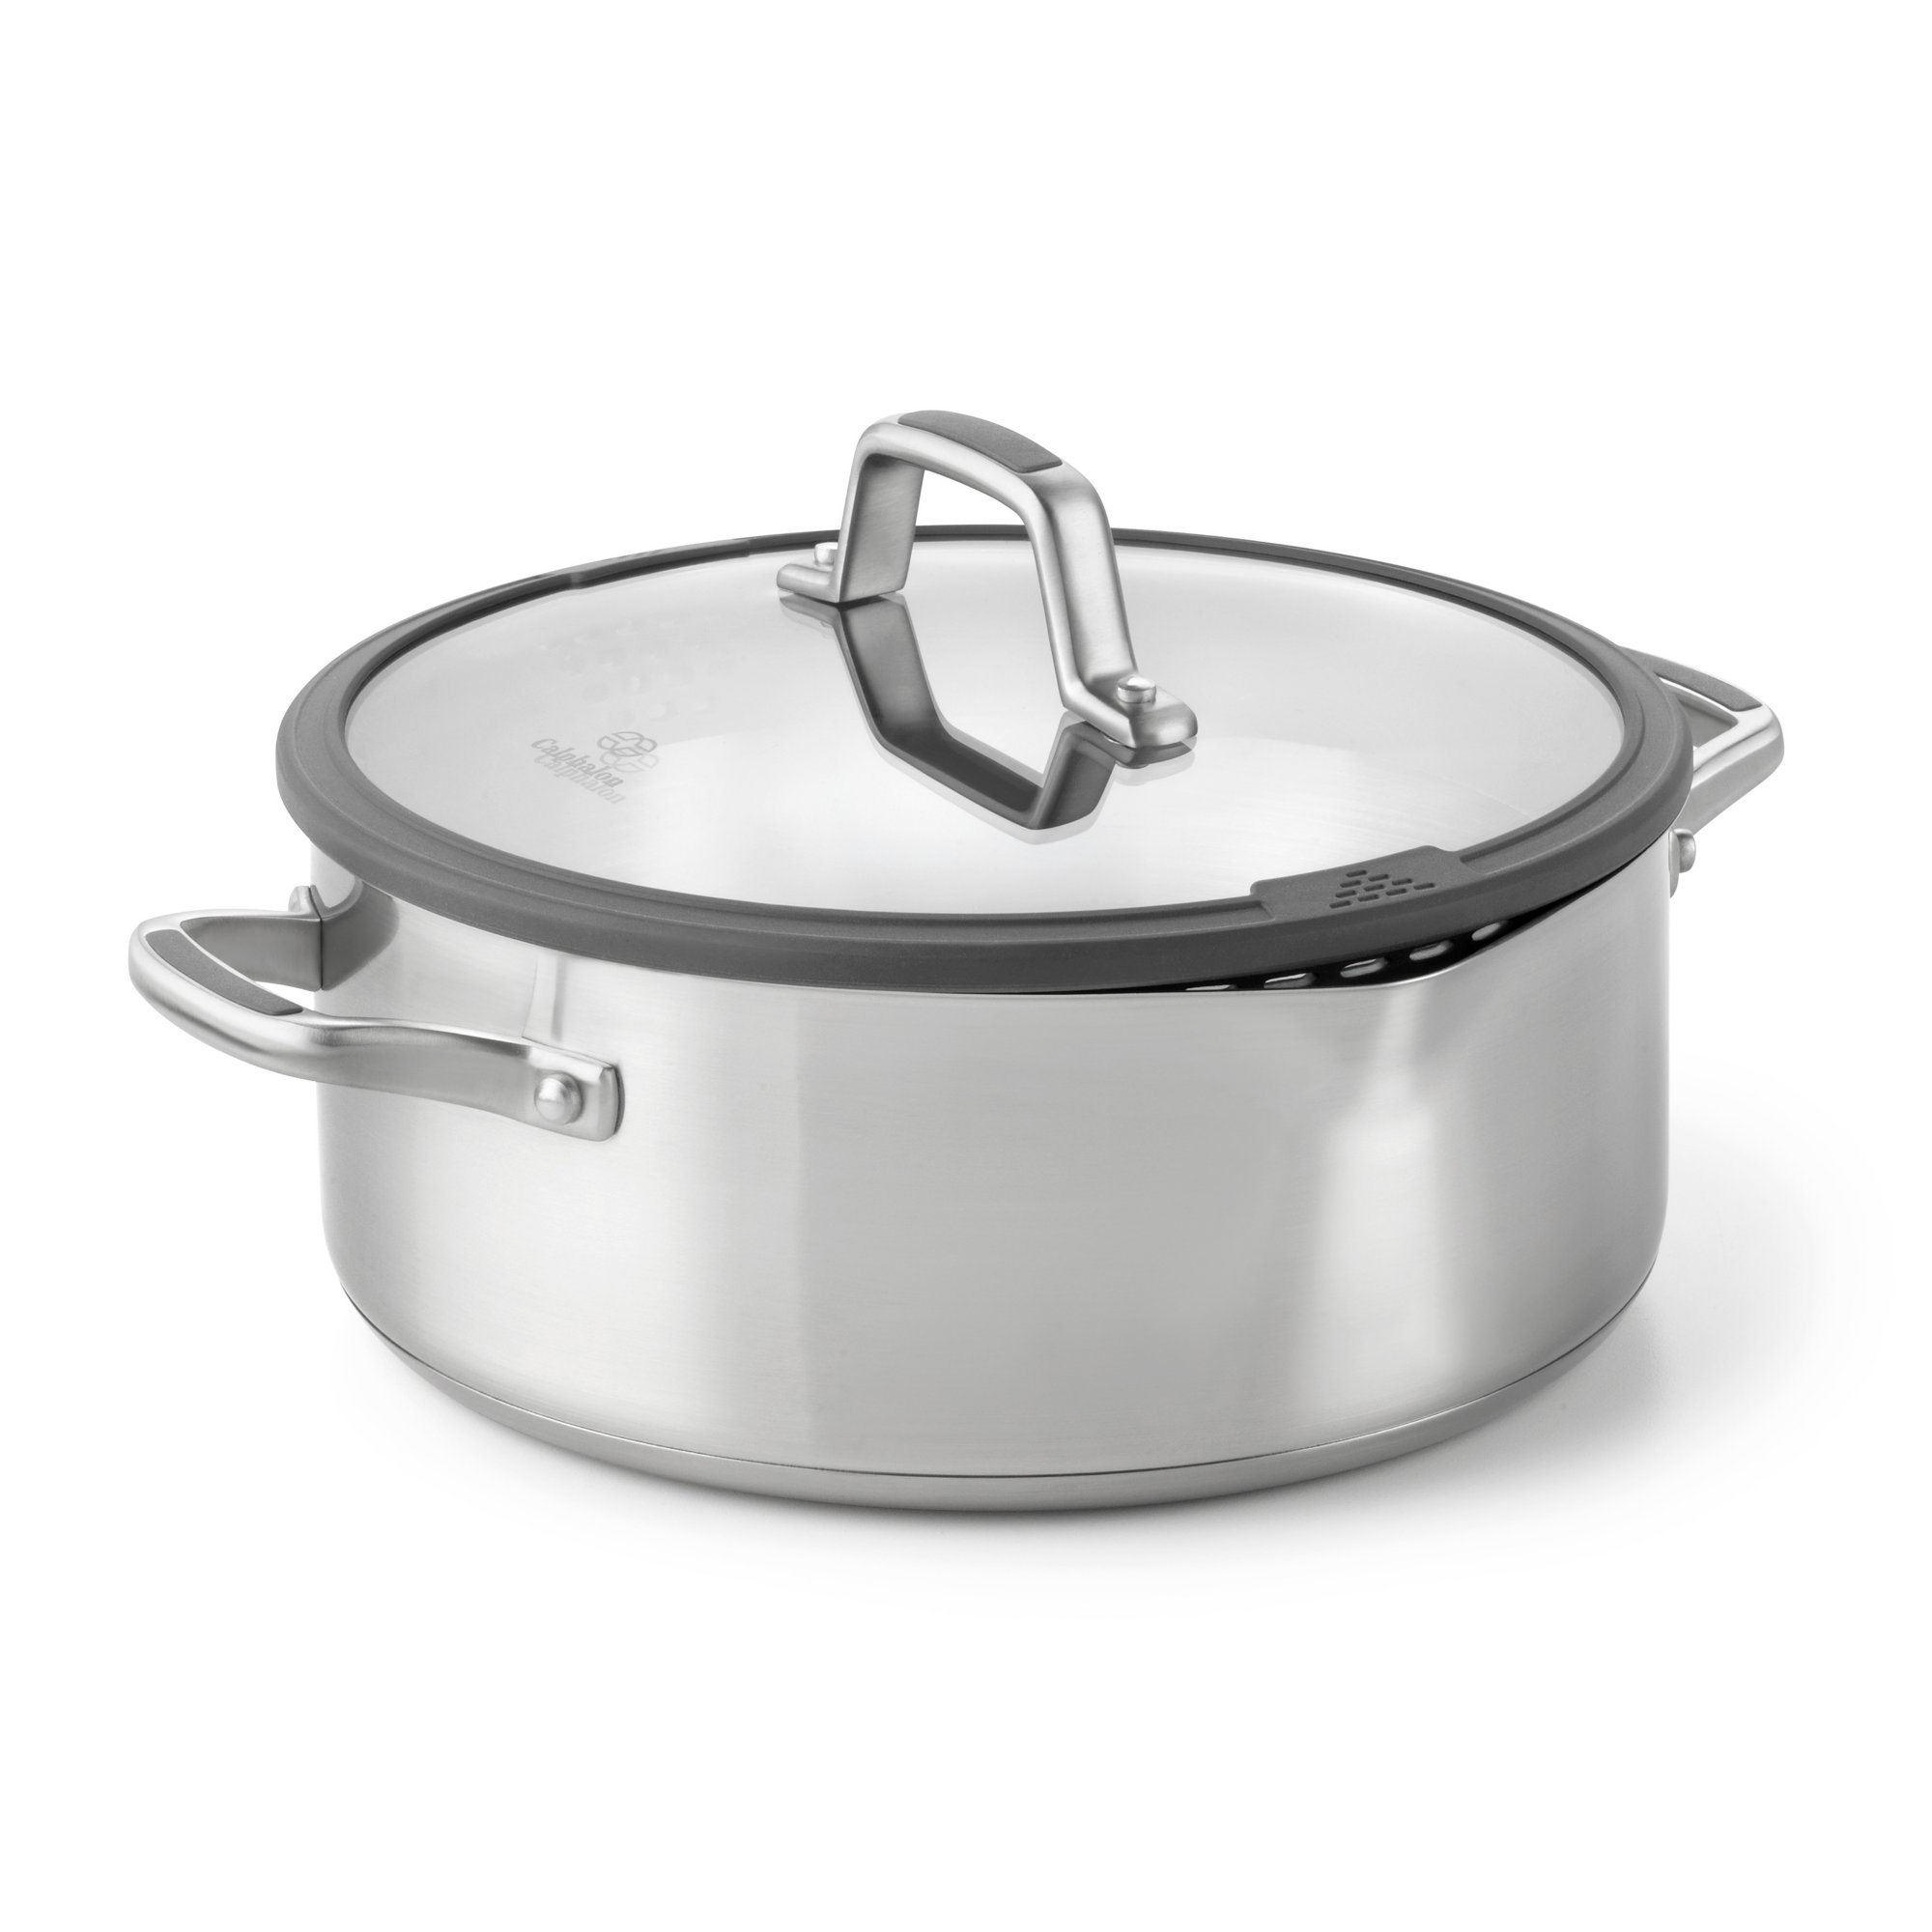 Calphalon Simply Easy System Stainless Steel 5-Quart Dutch Oven and Cover